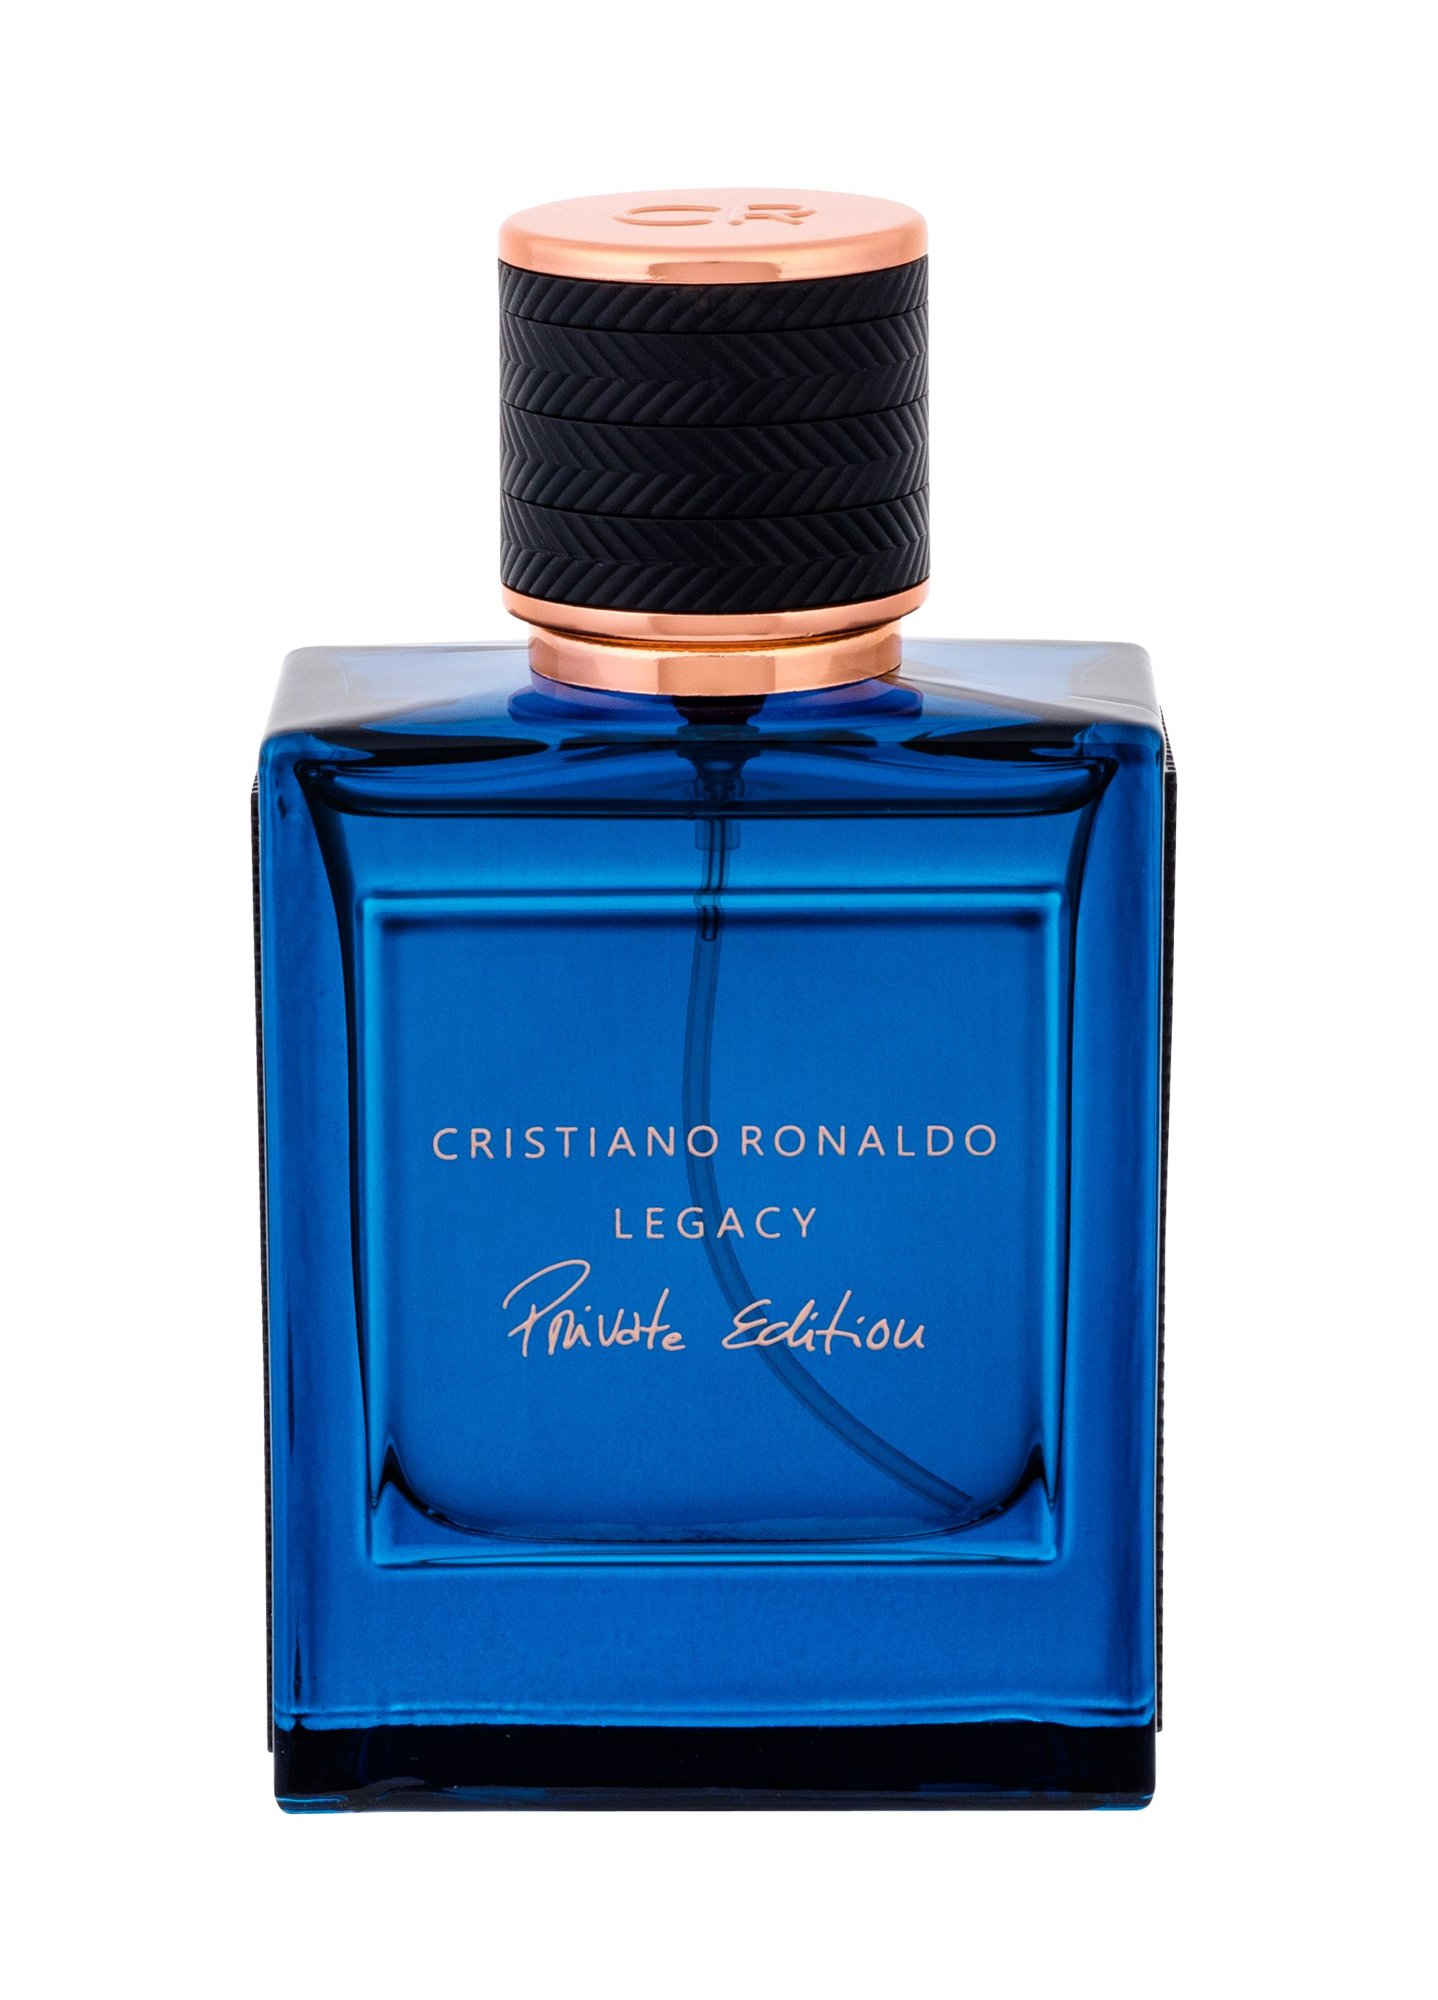 Cristiano Ronaldo Legacy Private Edition Eau de Parfum 50ml